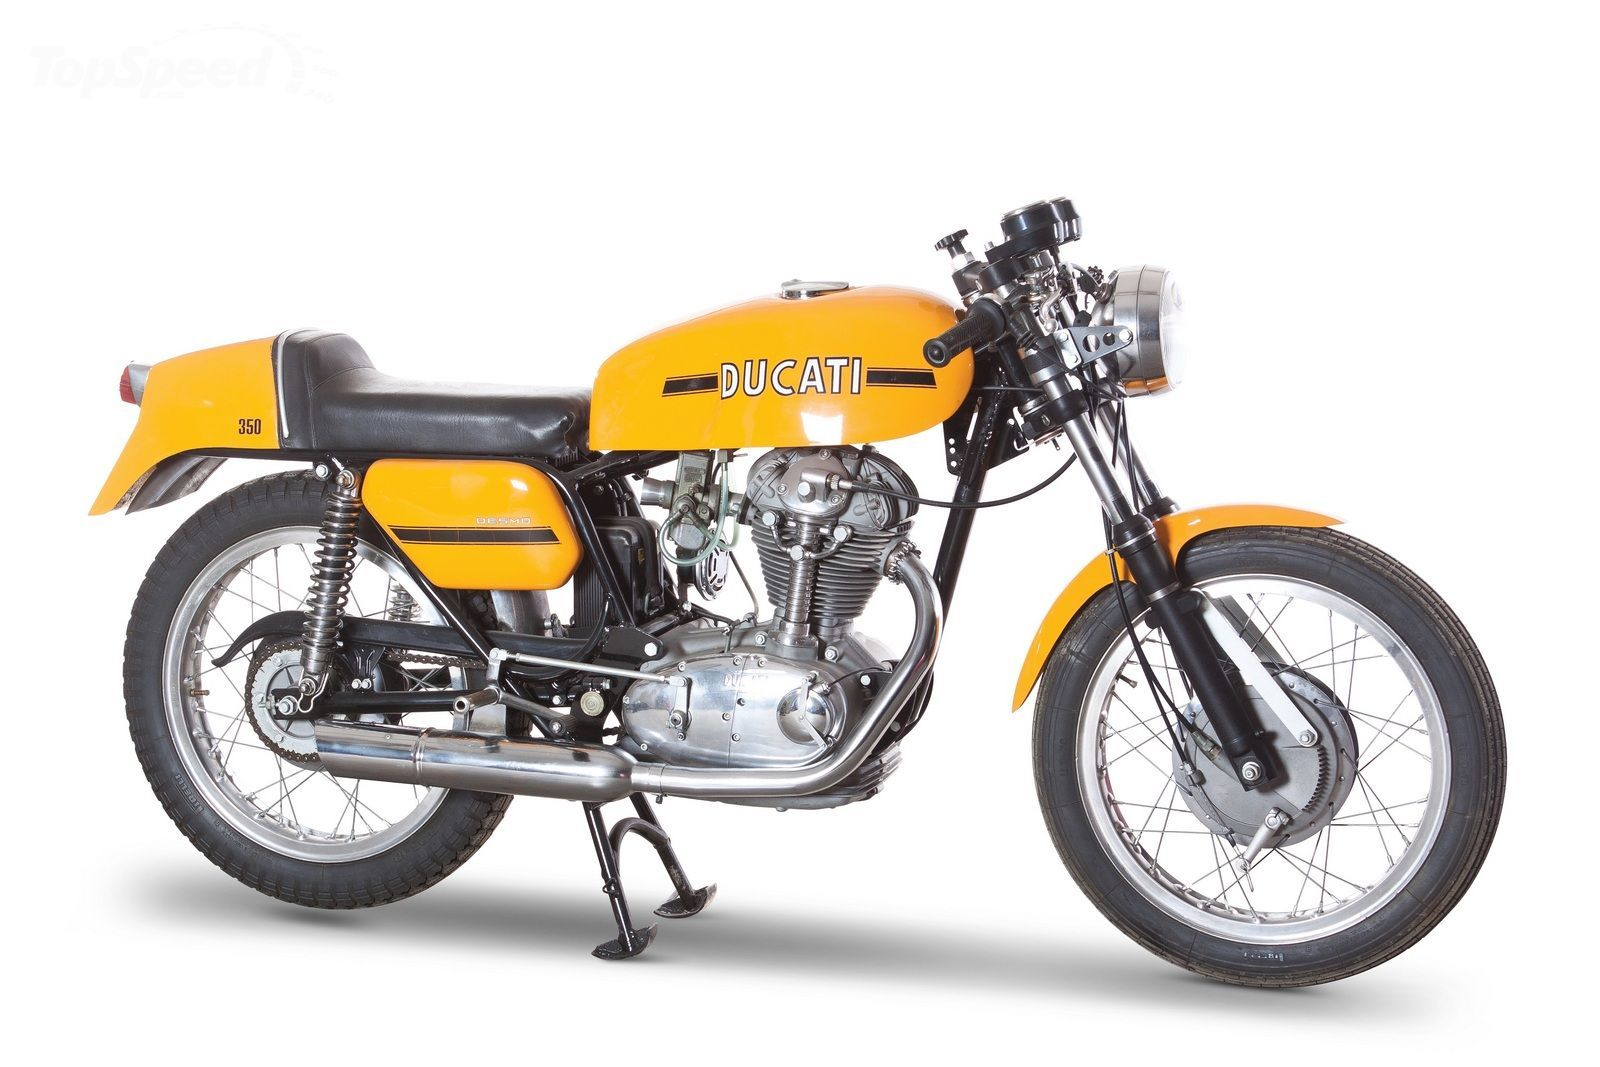 Ducati 450 Mark 3 1970 images #171184